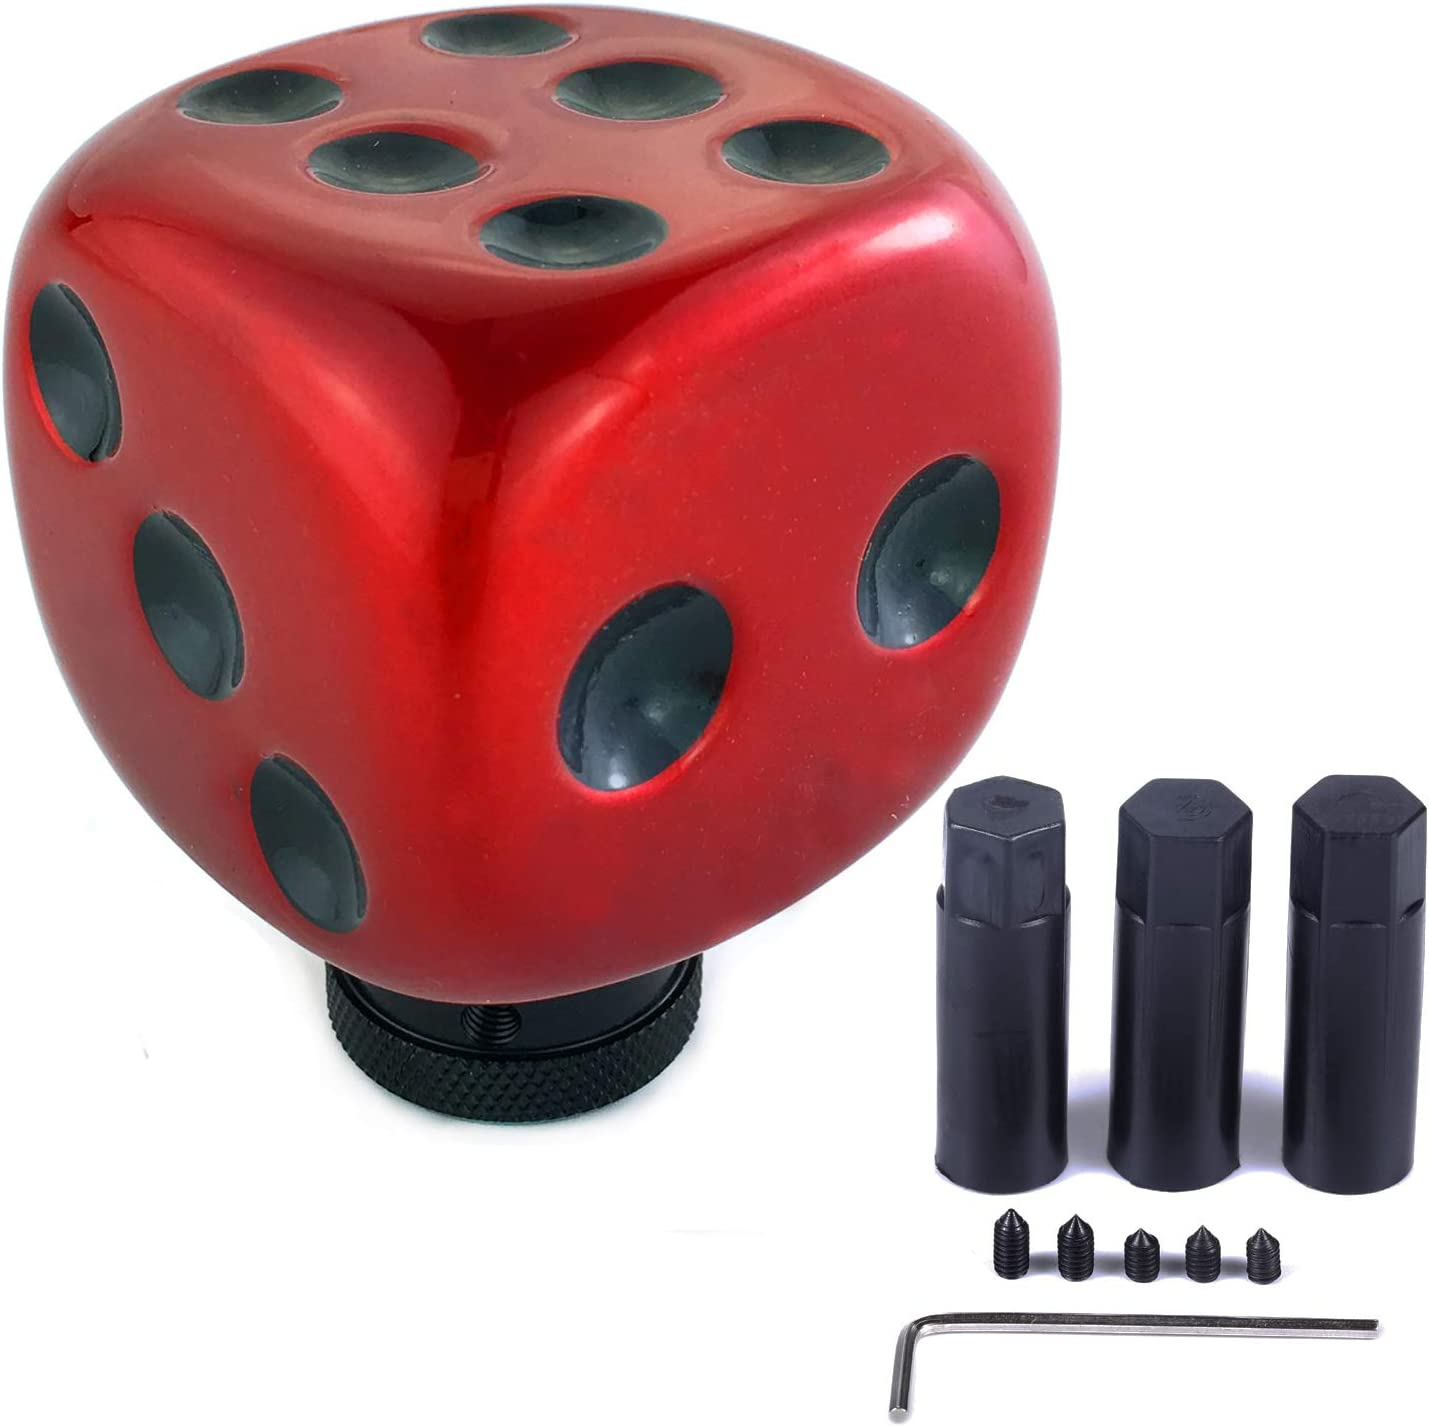 Arenbel Dice Manual Knob Universal Lever Stick Shifting Shift Head Car Speed Shifter Handle fit Most MT at, Red, Black